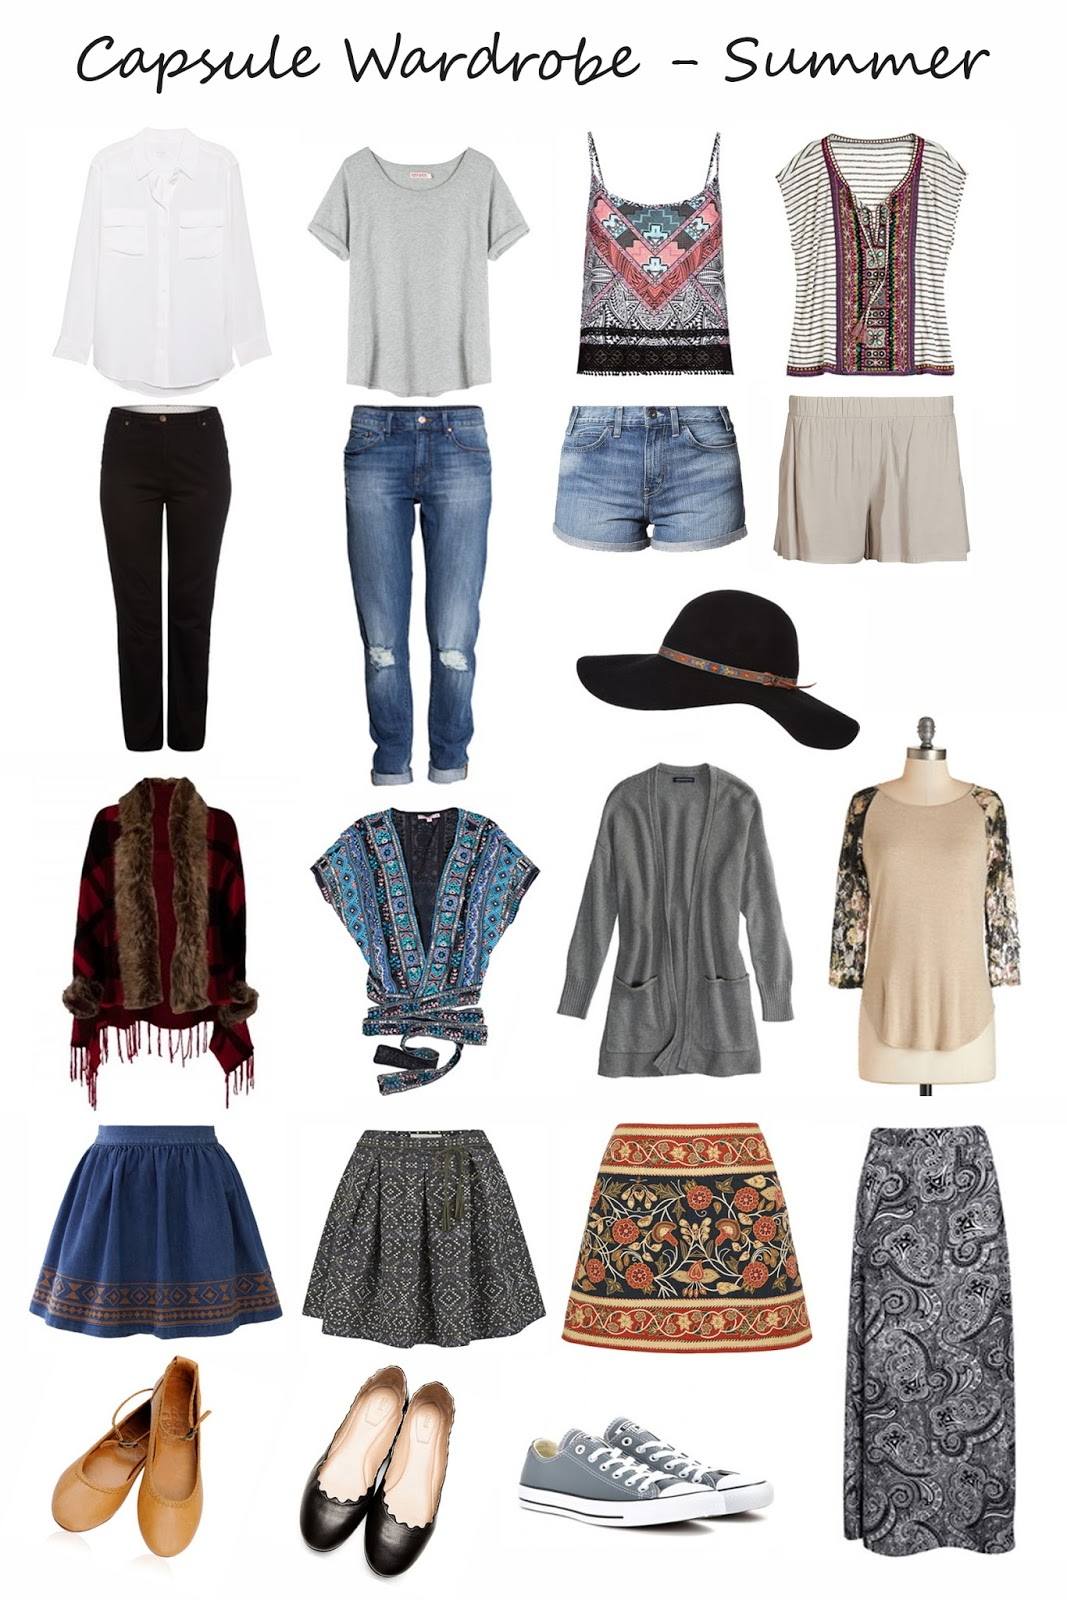 http://www.polyvore.com/summer_capsule_wardrobe/collection?id=3976539